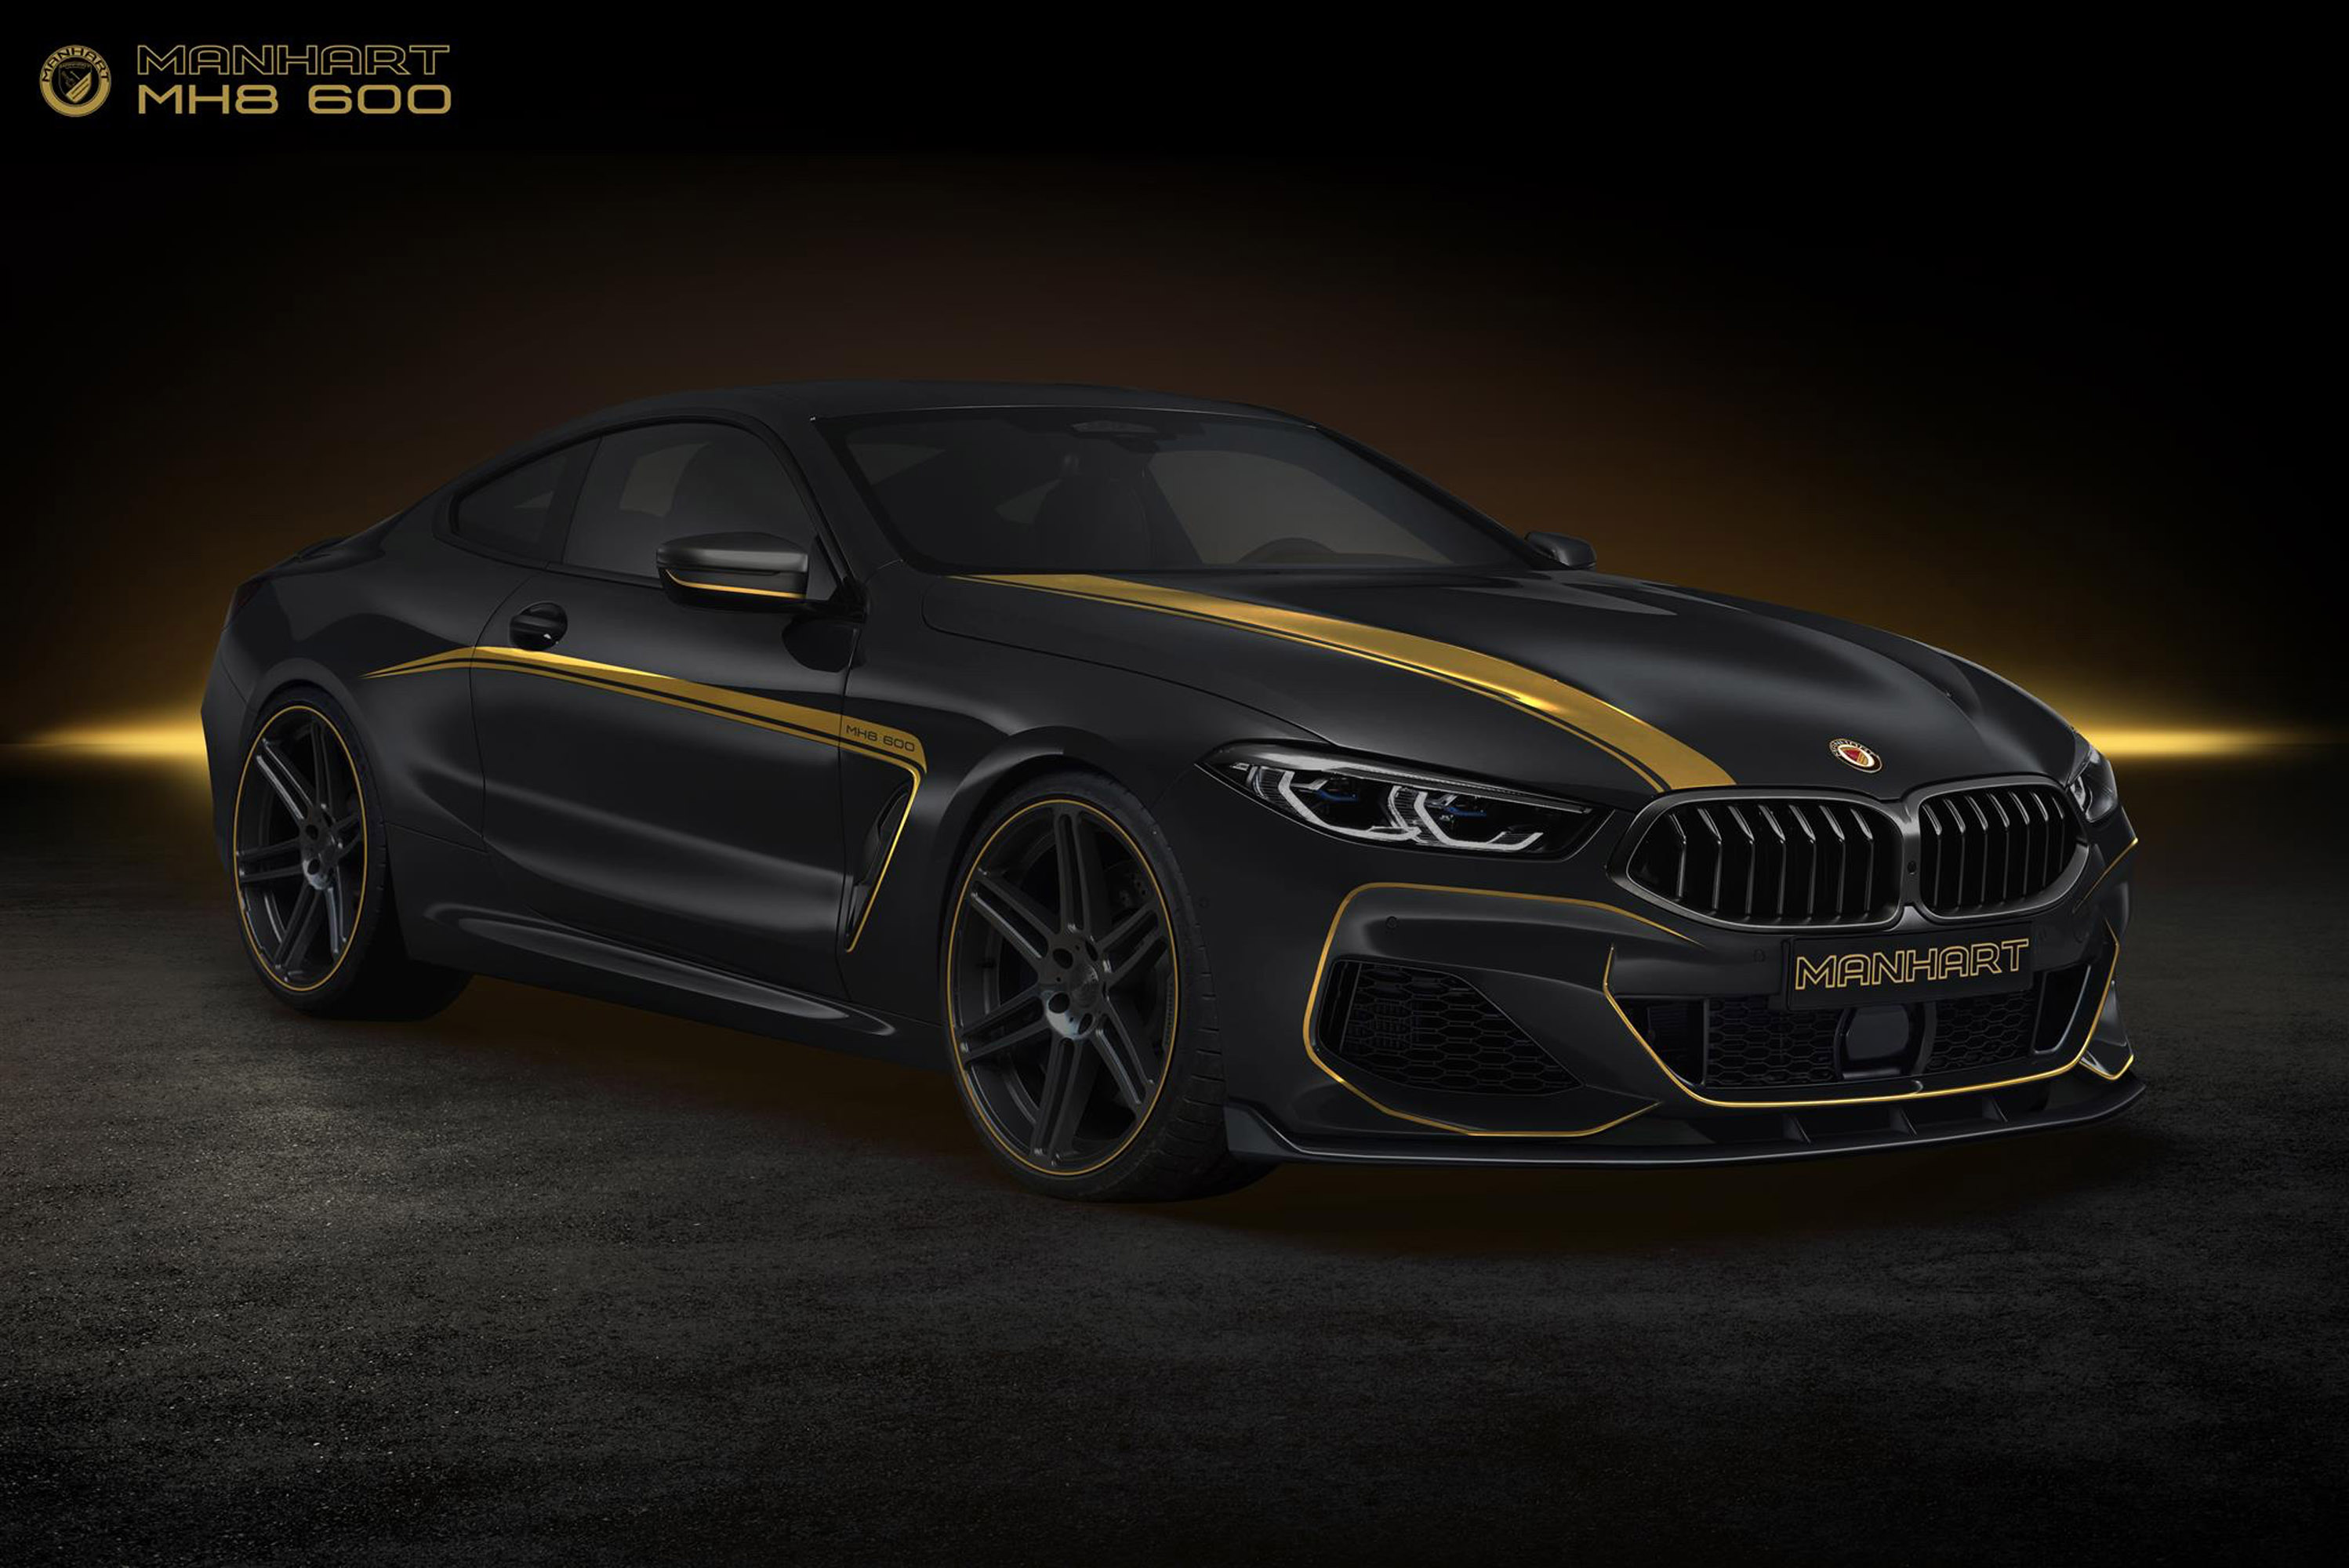 Manhart Upgrades 2018 Bmw 8 Series Machine